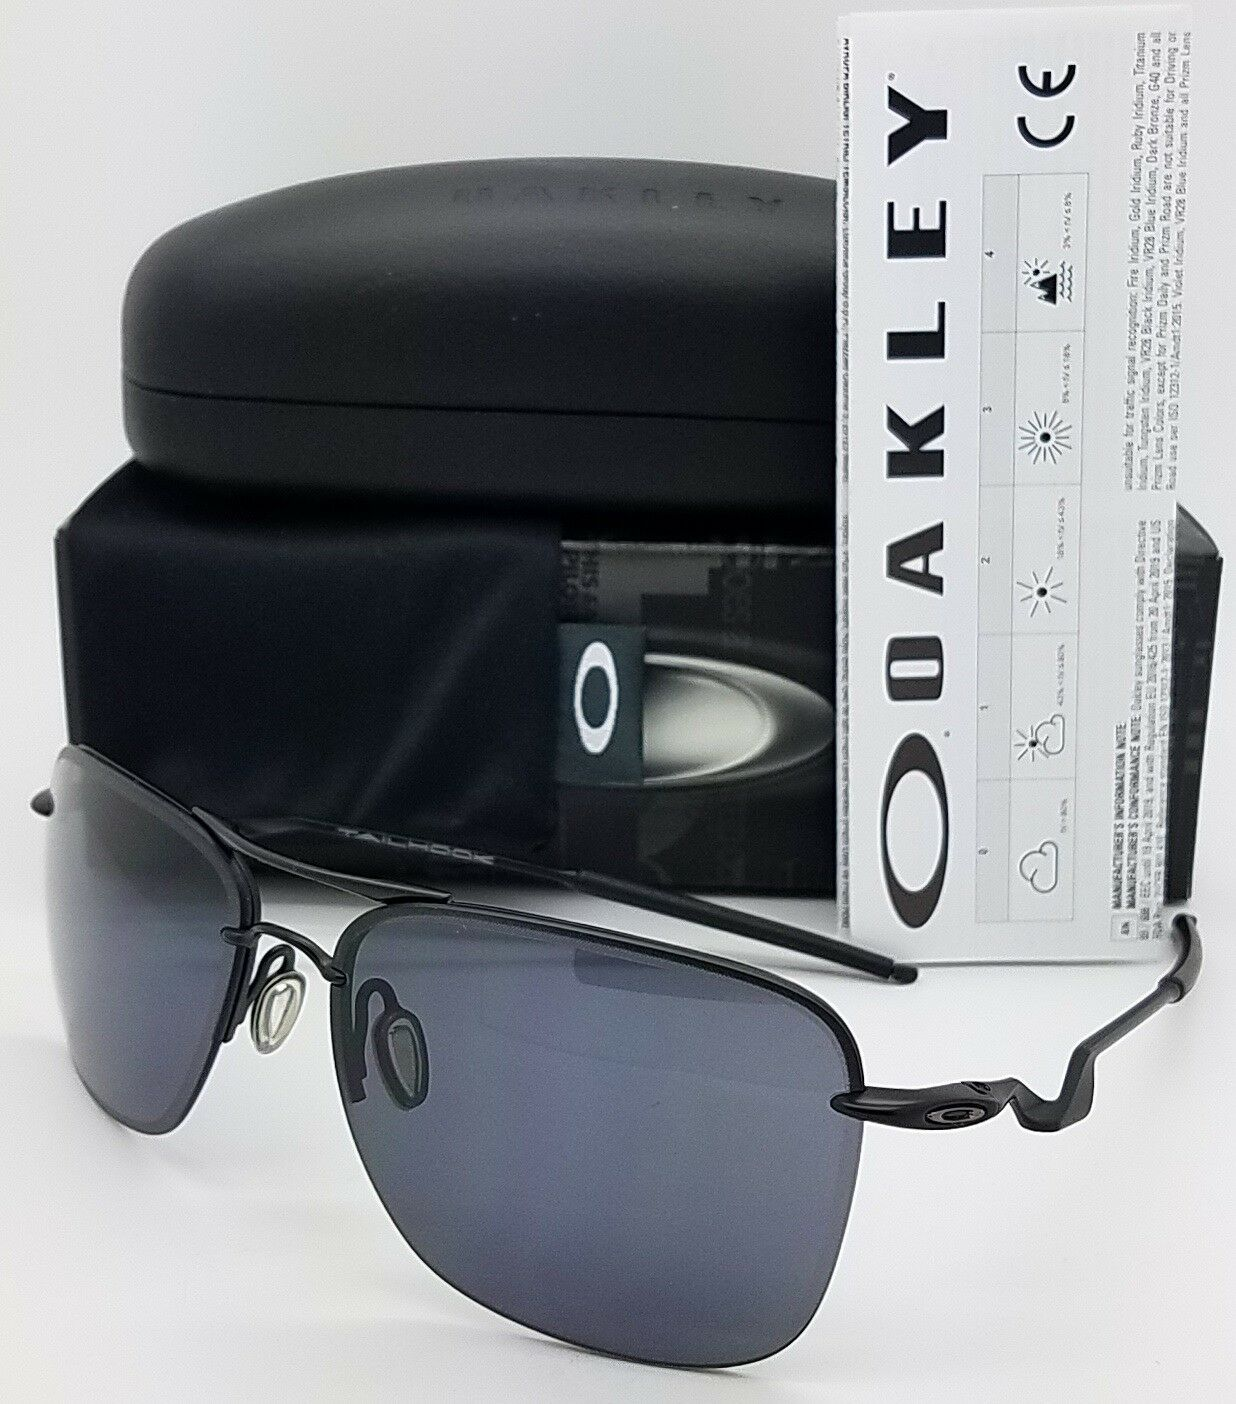 Oakley Black Sunglasses OO 4087 01 60 mm TailHook Sport Sati